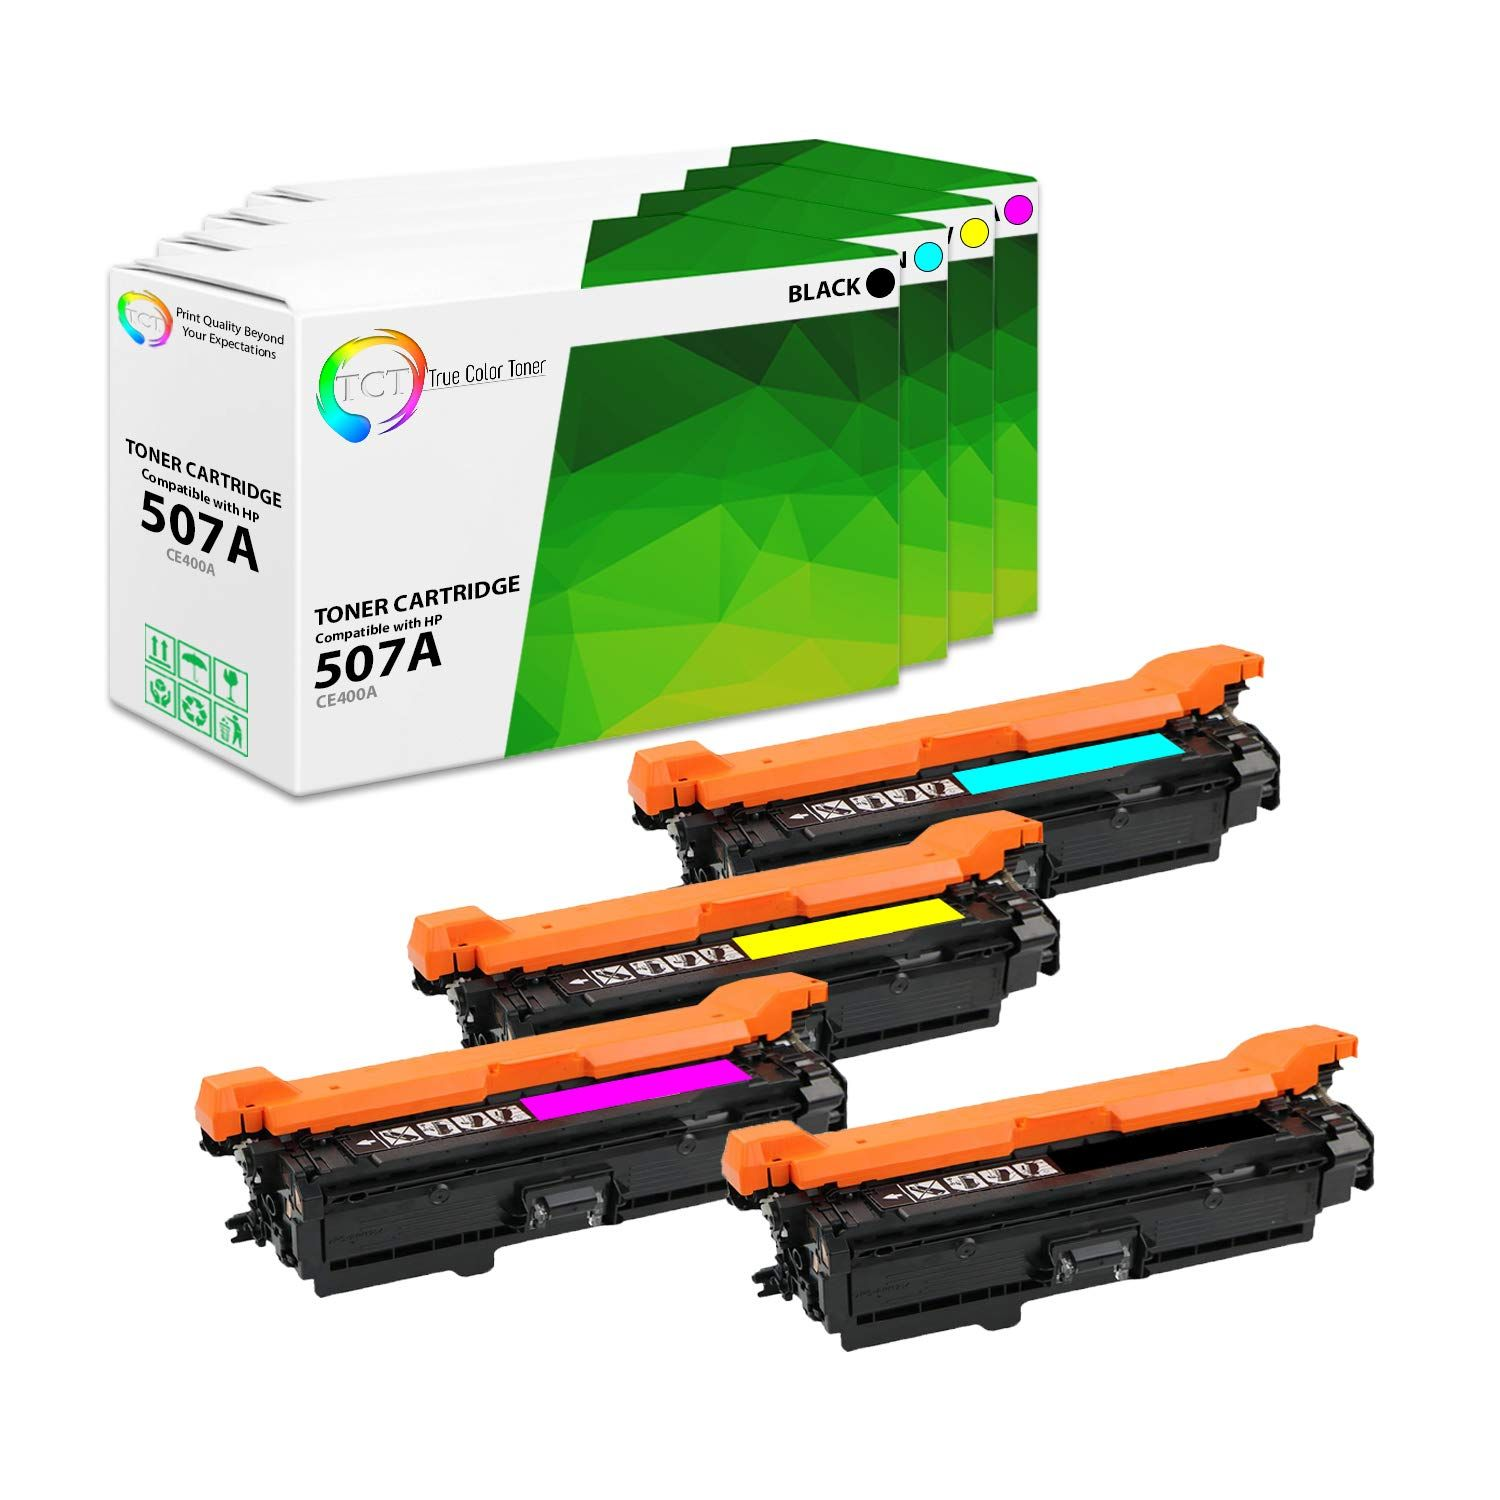 4 Pack Tct Compatible Hp 507a Replacement Toner Cartridge Replaces Oem Ce400a Ce401a Ce402a Ce403a Printer Compatibi Toner Cartridge Toner True Colors